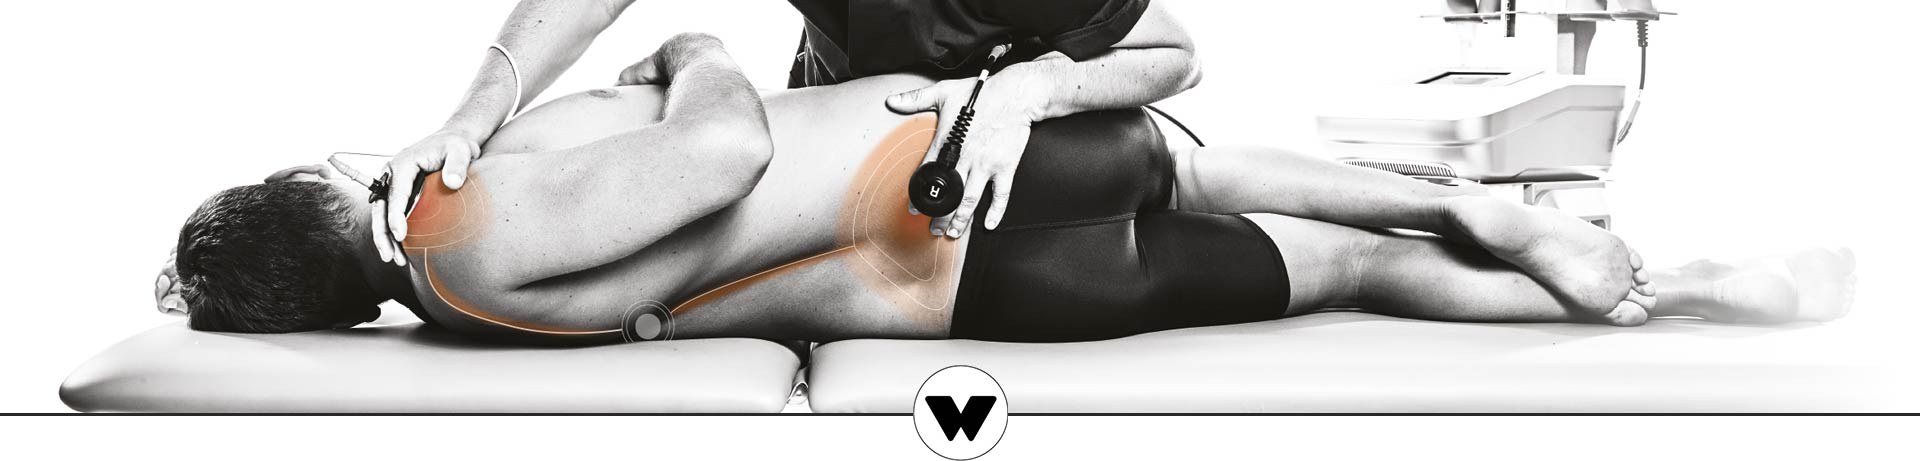 Winback World Tecartherapy